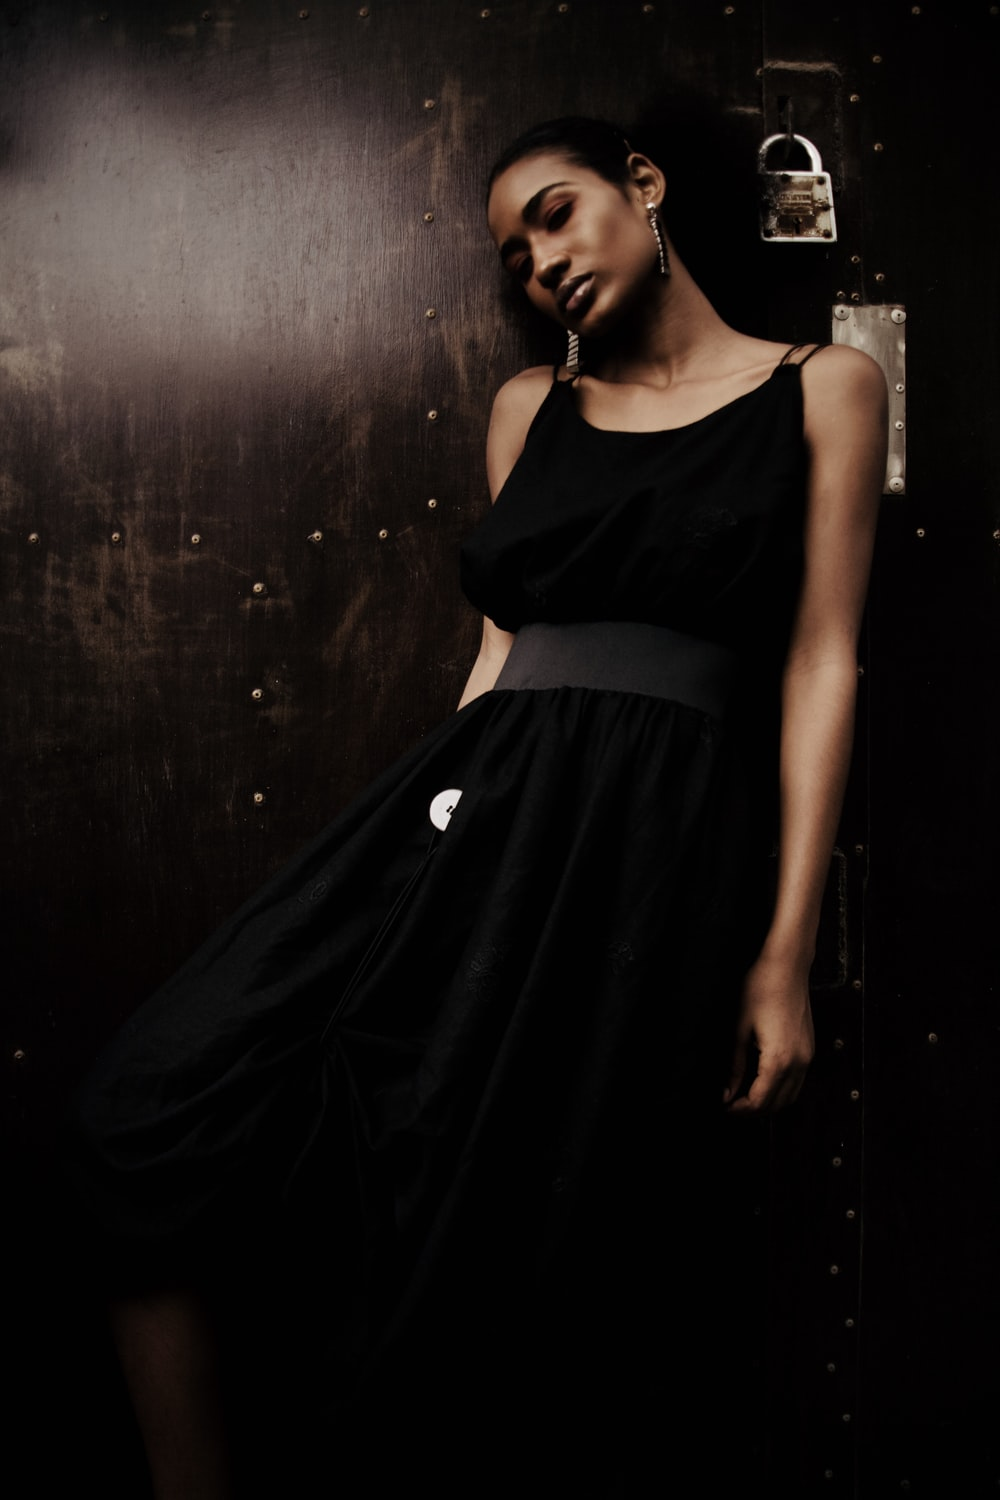 woman in black sleeveless dress leans on wall